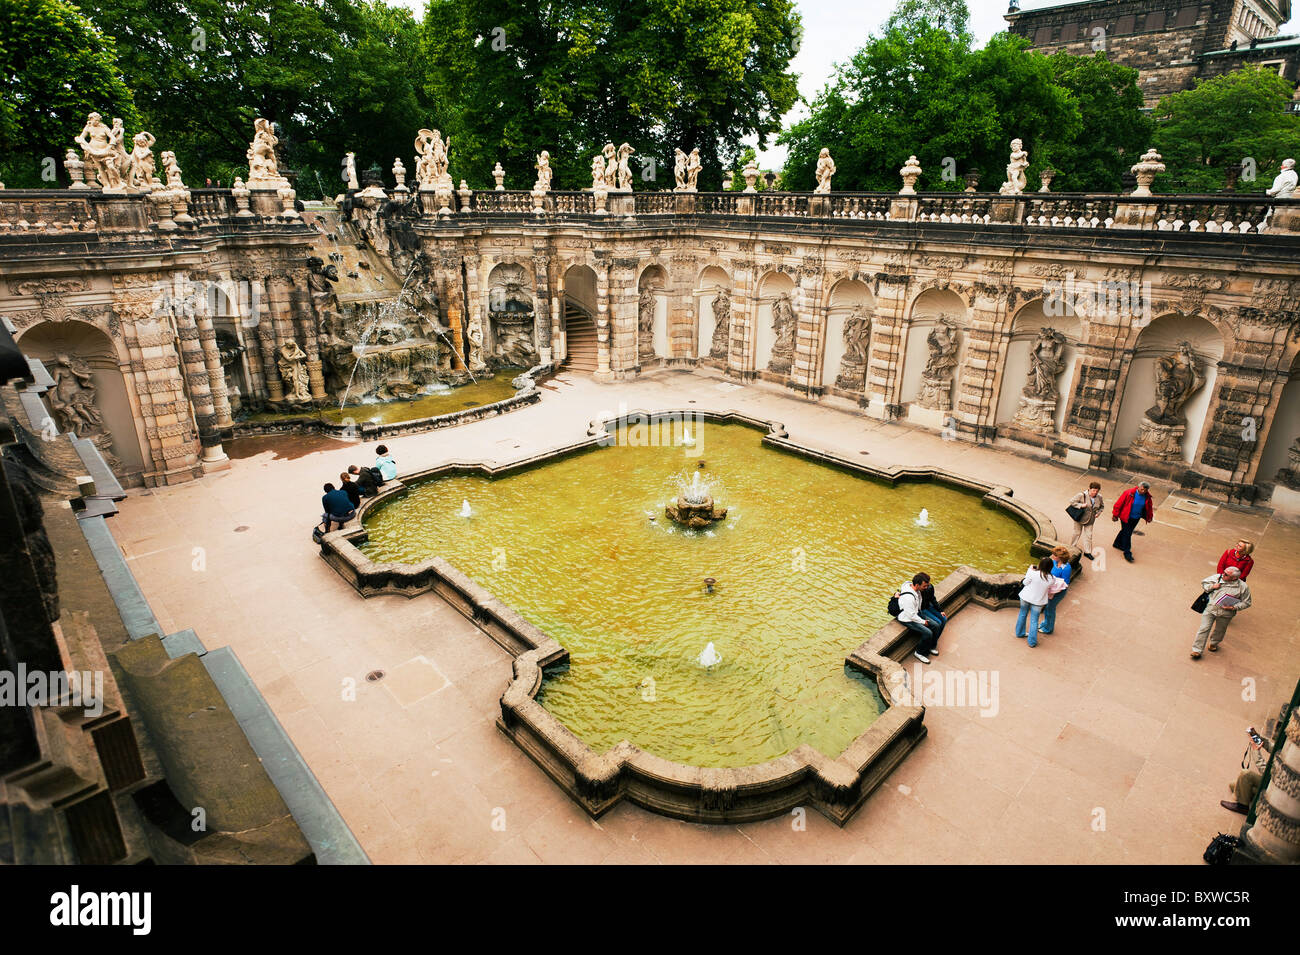 zwinger with fountains stockfotos zwinger with fountains bilder alamy. Black Bedroom Furniture Sets. Home Design Ideas